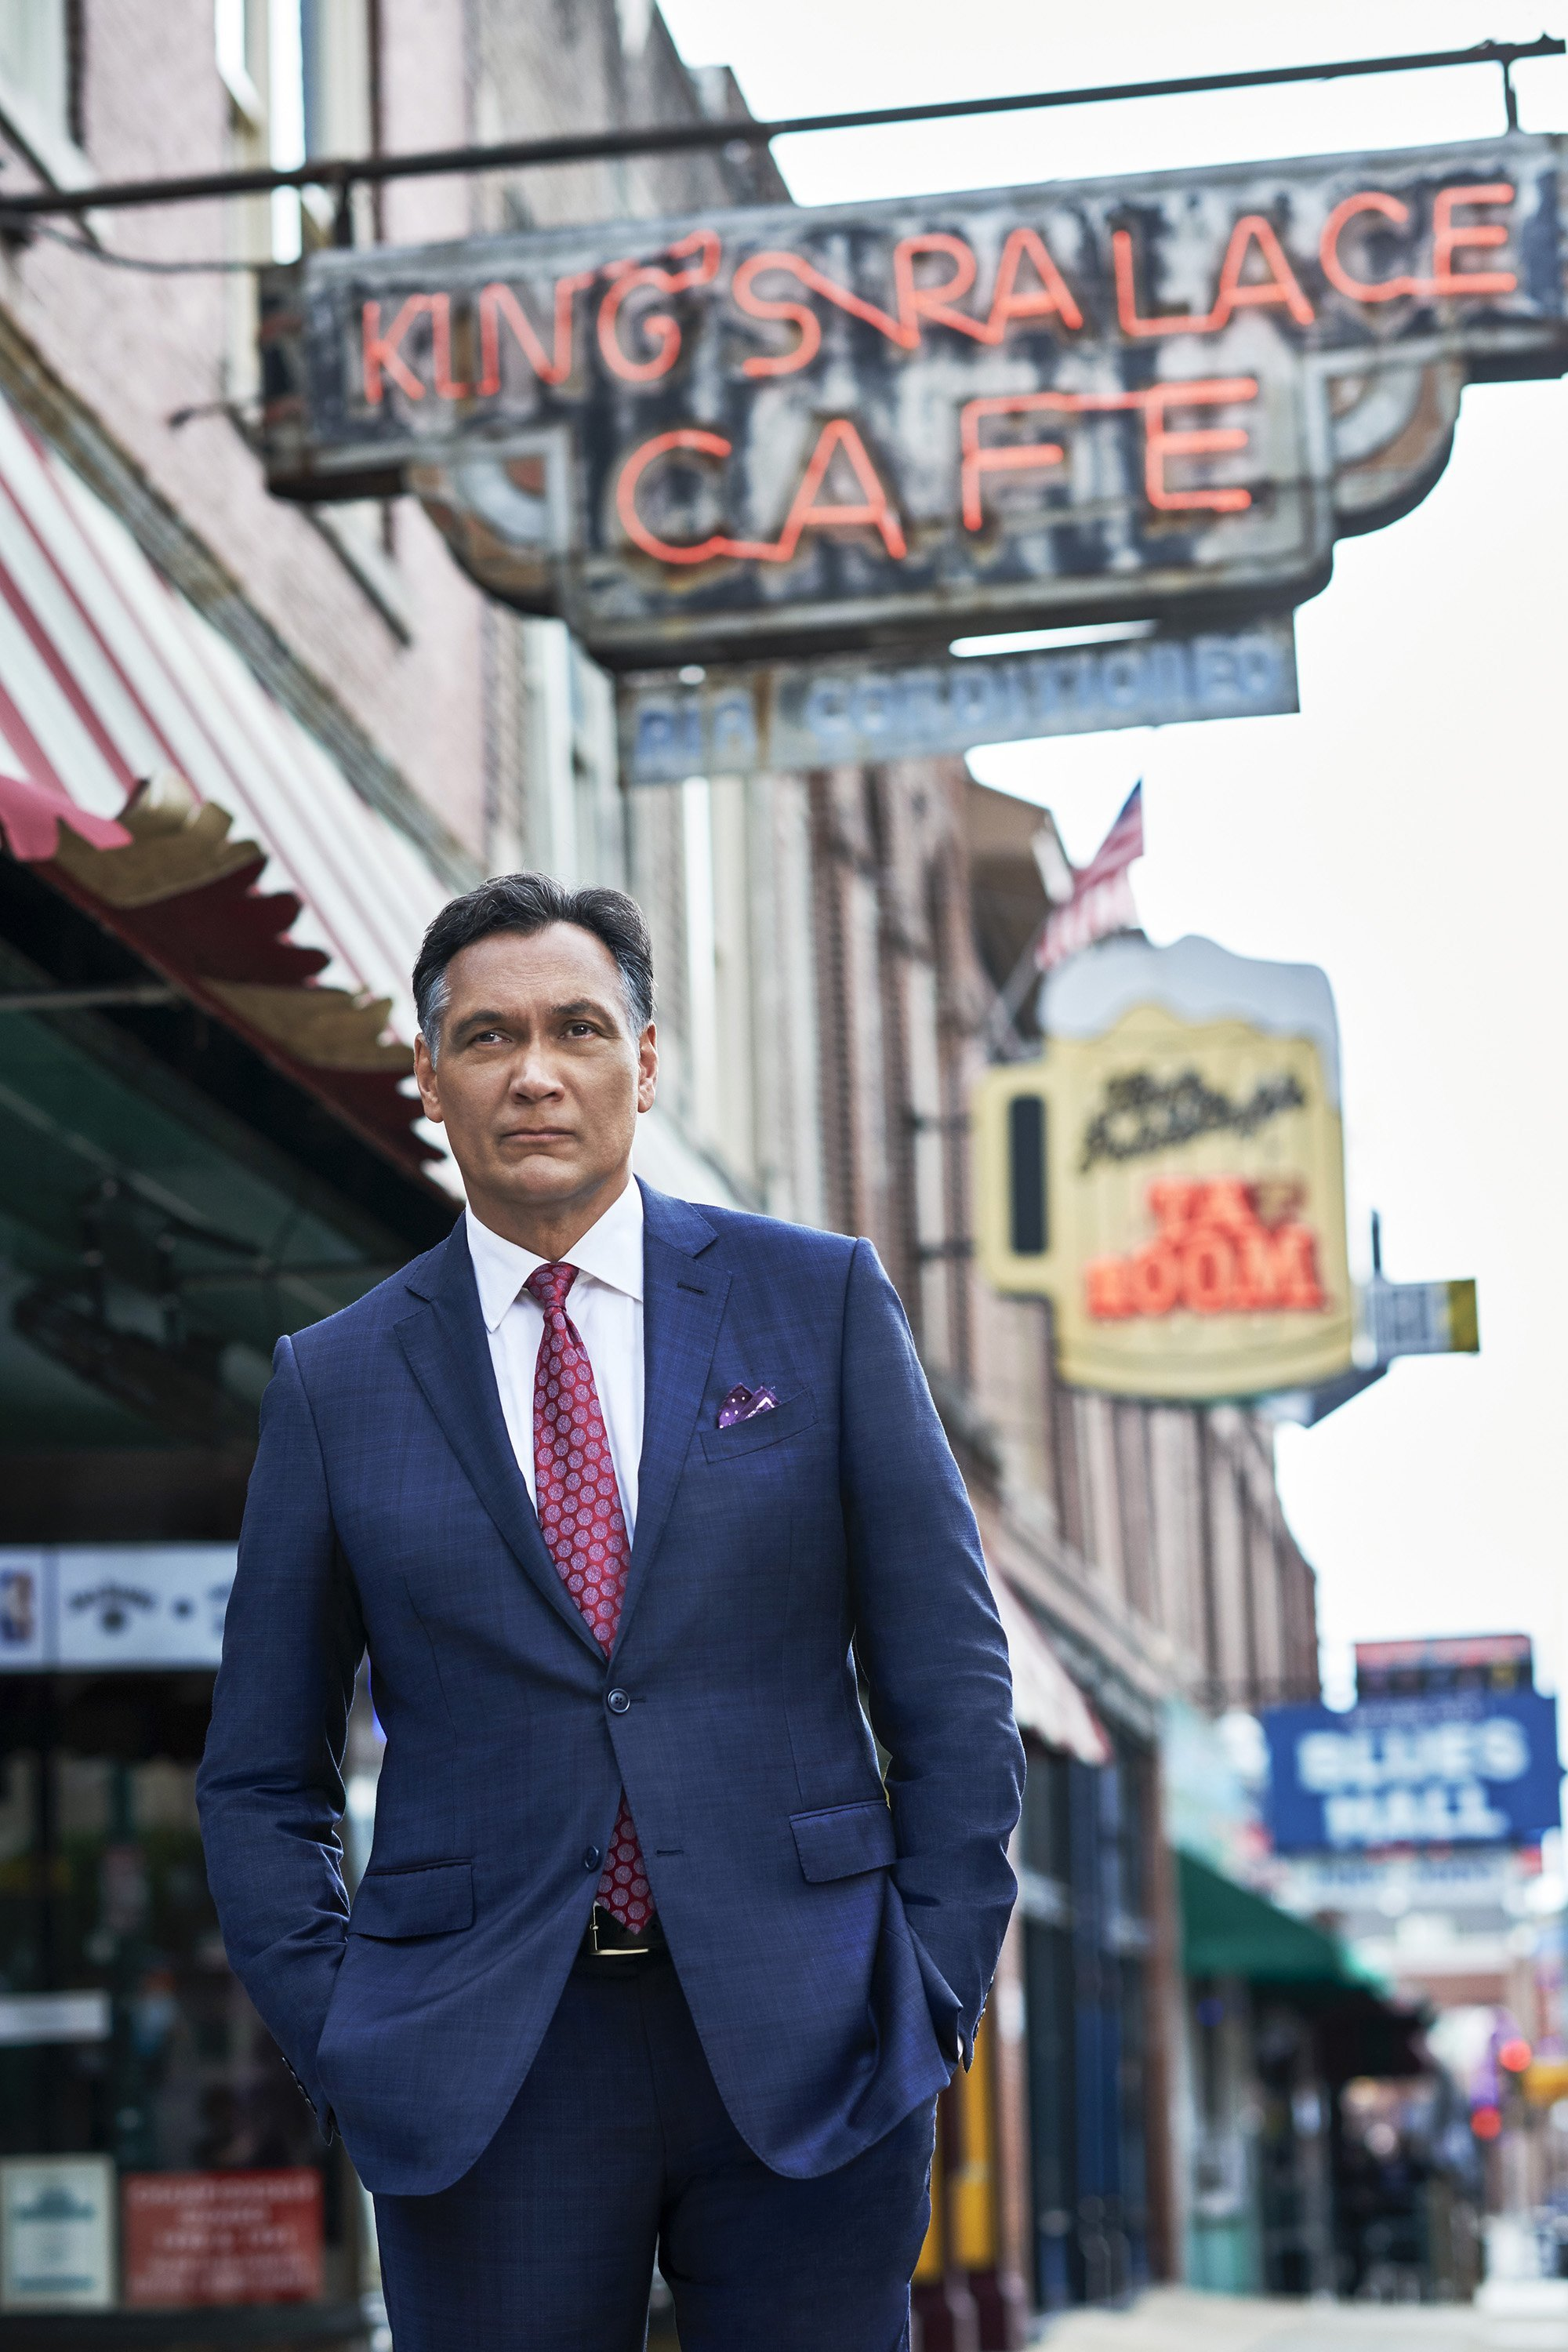 Three decades later, Jimmy Smits is back in the TV courtroom